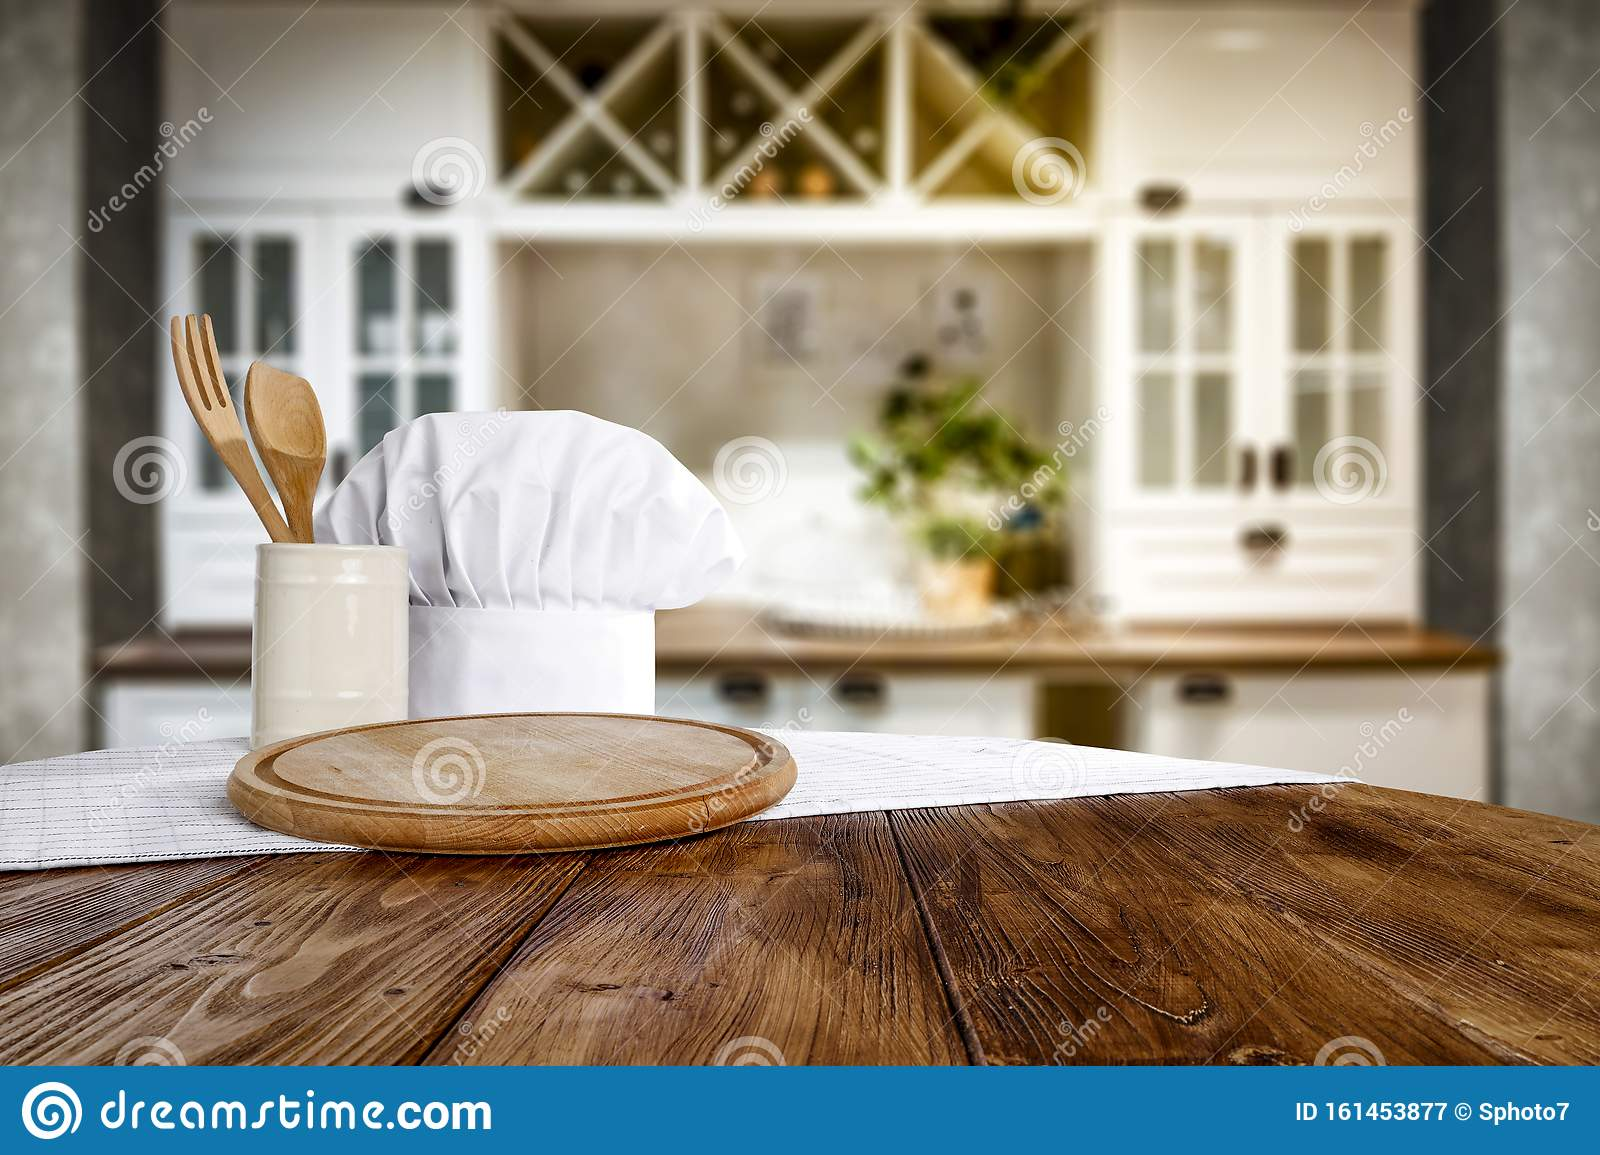 kitchen table top with empty space for you products or